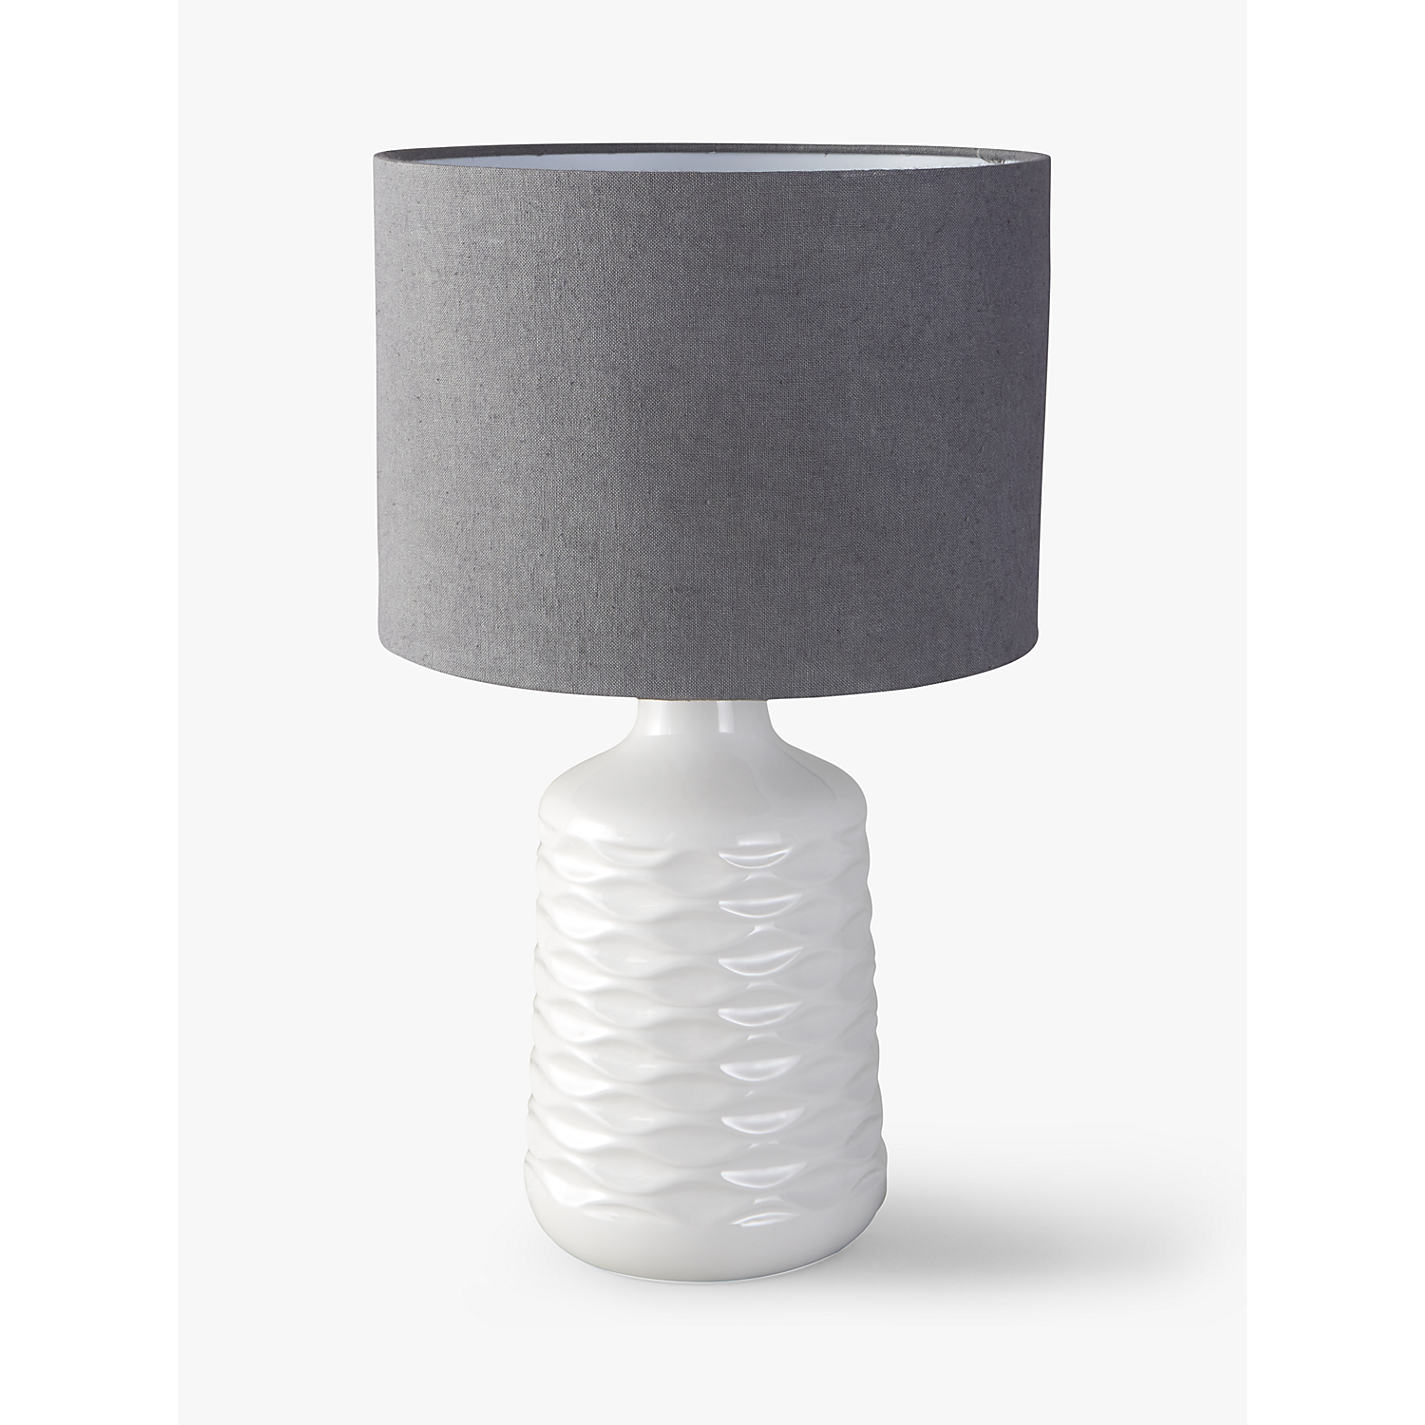 John Lewis Kitchen Lights Table Lamps Shop For Bedside And Side Table Lamps At John Lewis